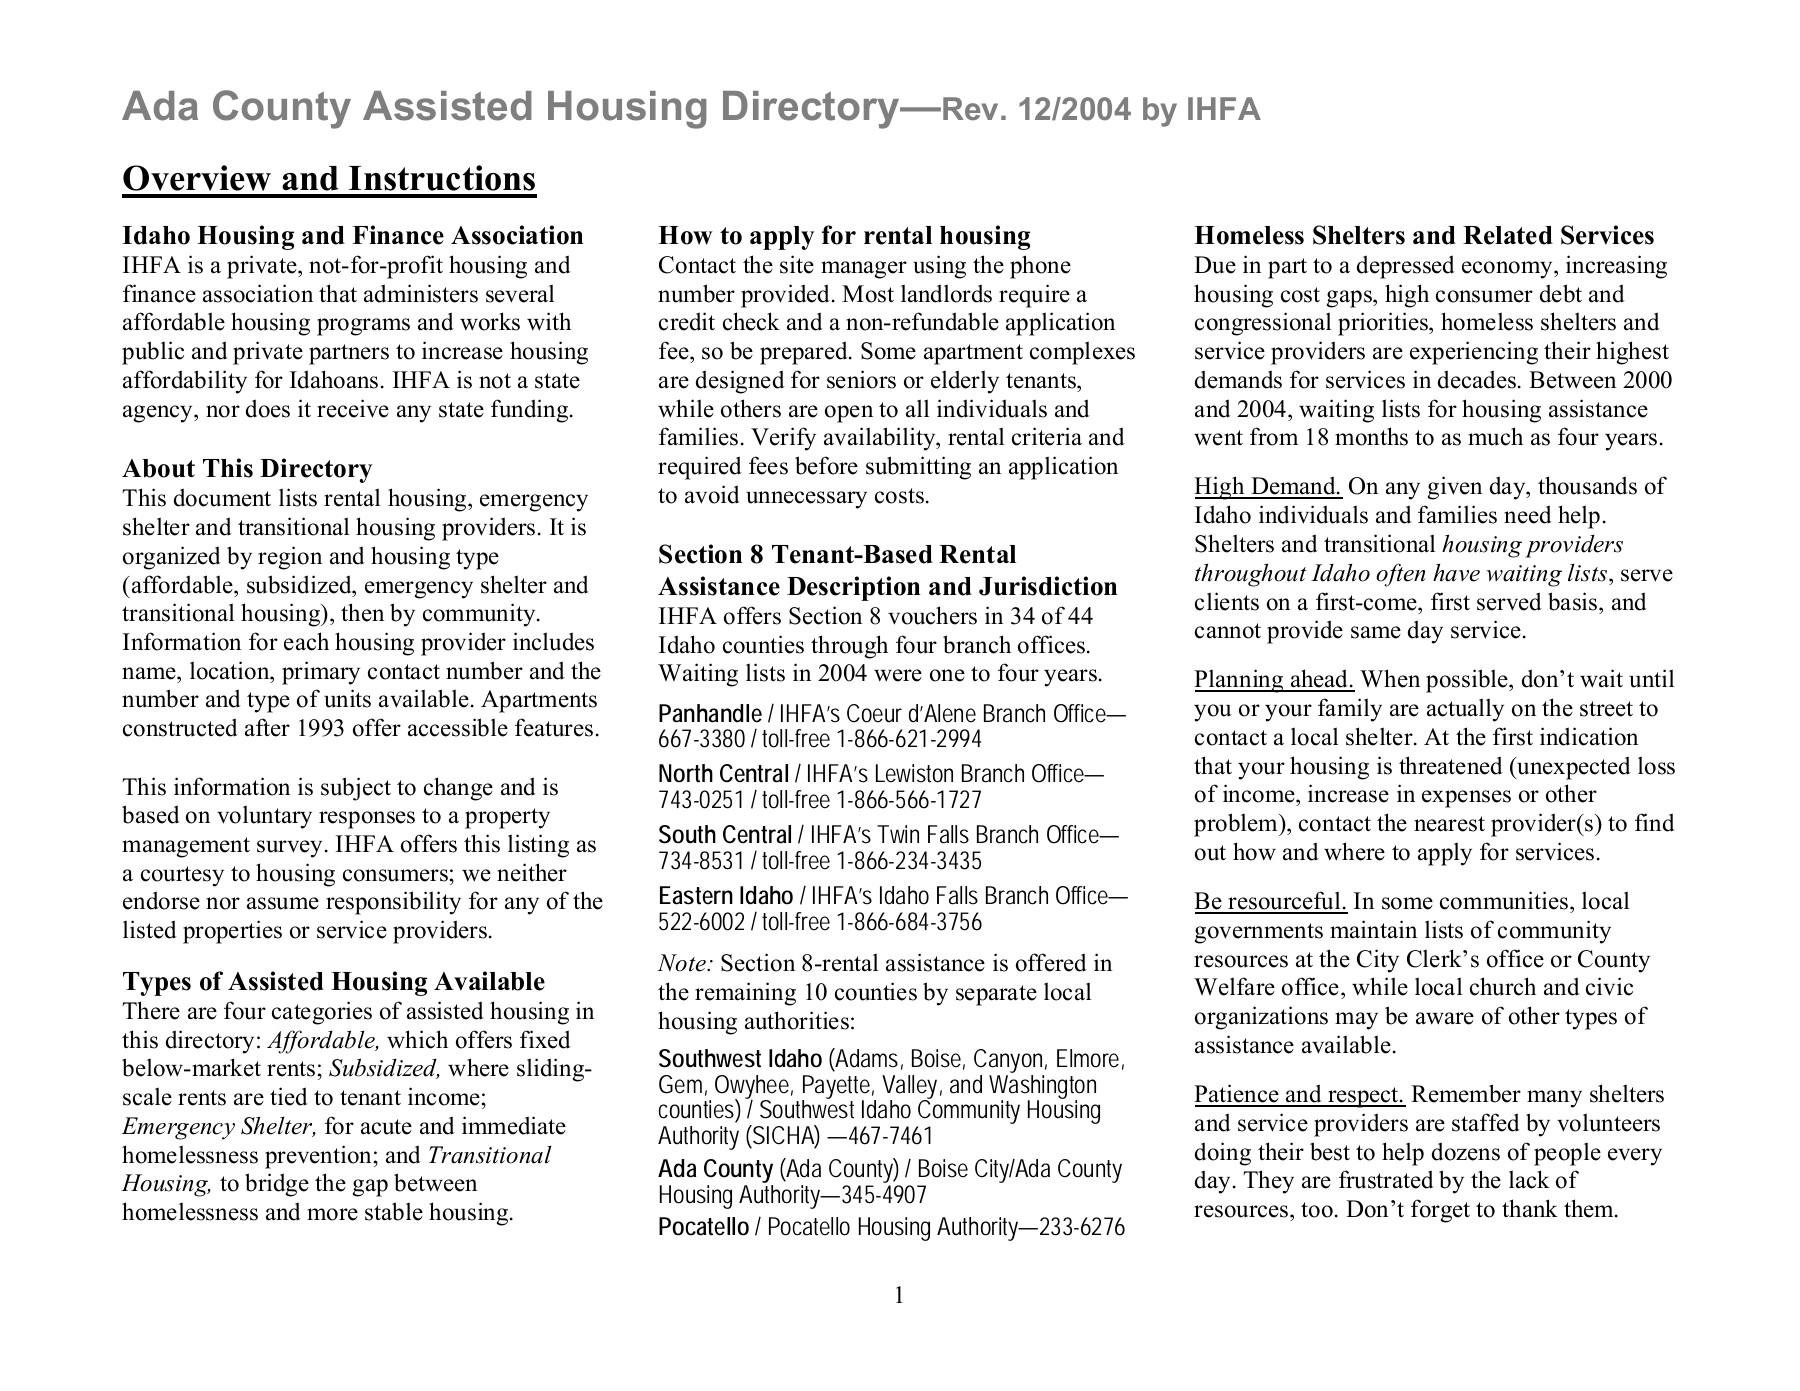 Ada County Assisted Housing Directory— Pages 1 - 6 - Text Version